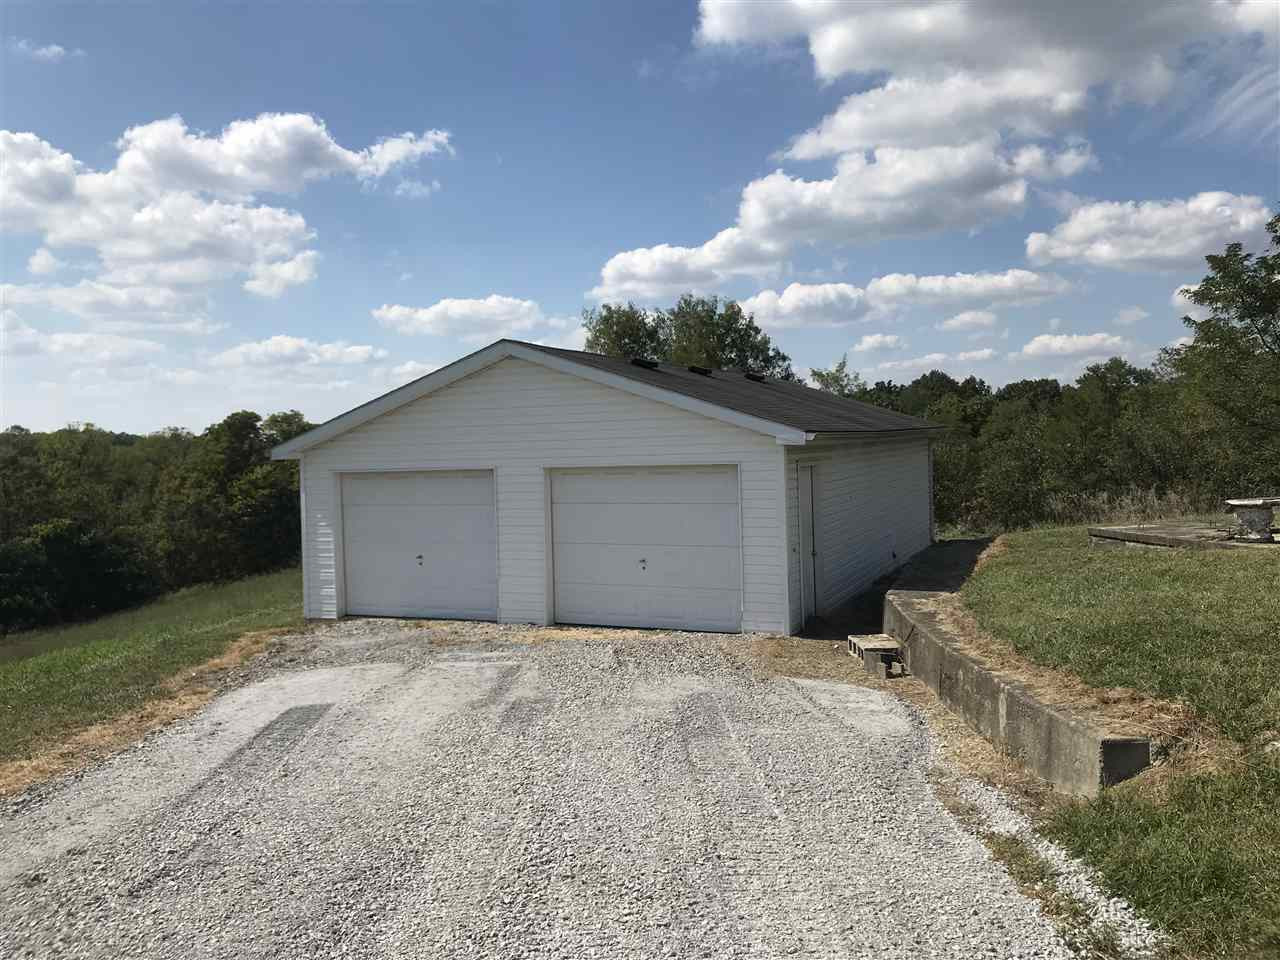 Photo 2 for 14266 KY Highway 356 Sadieville, KY 40370